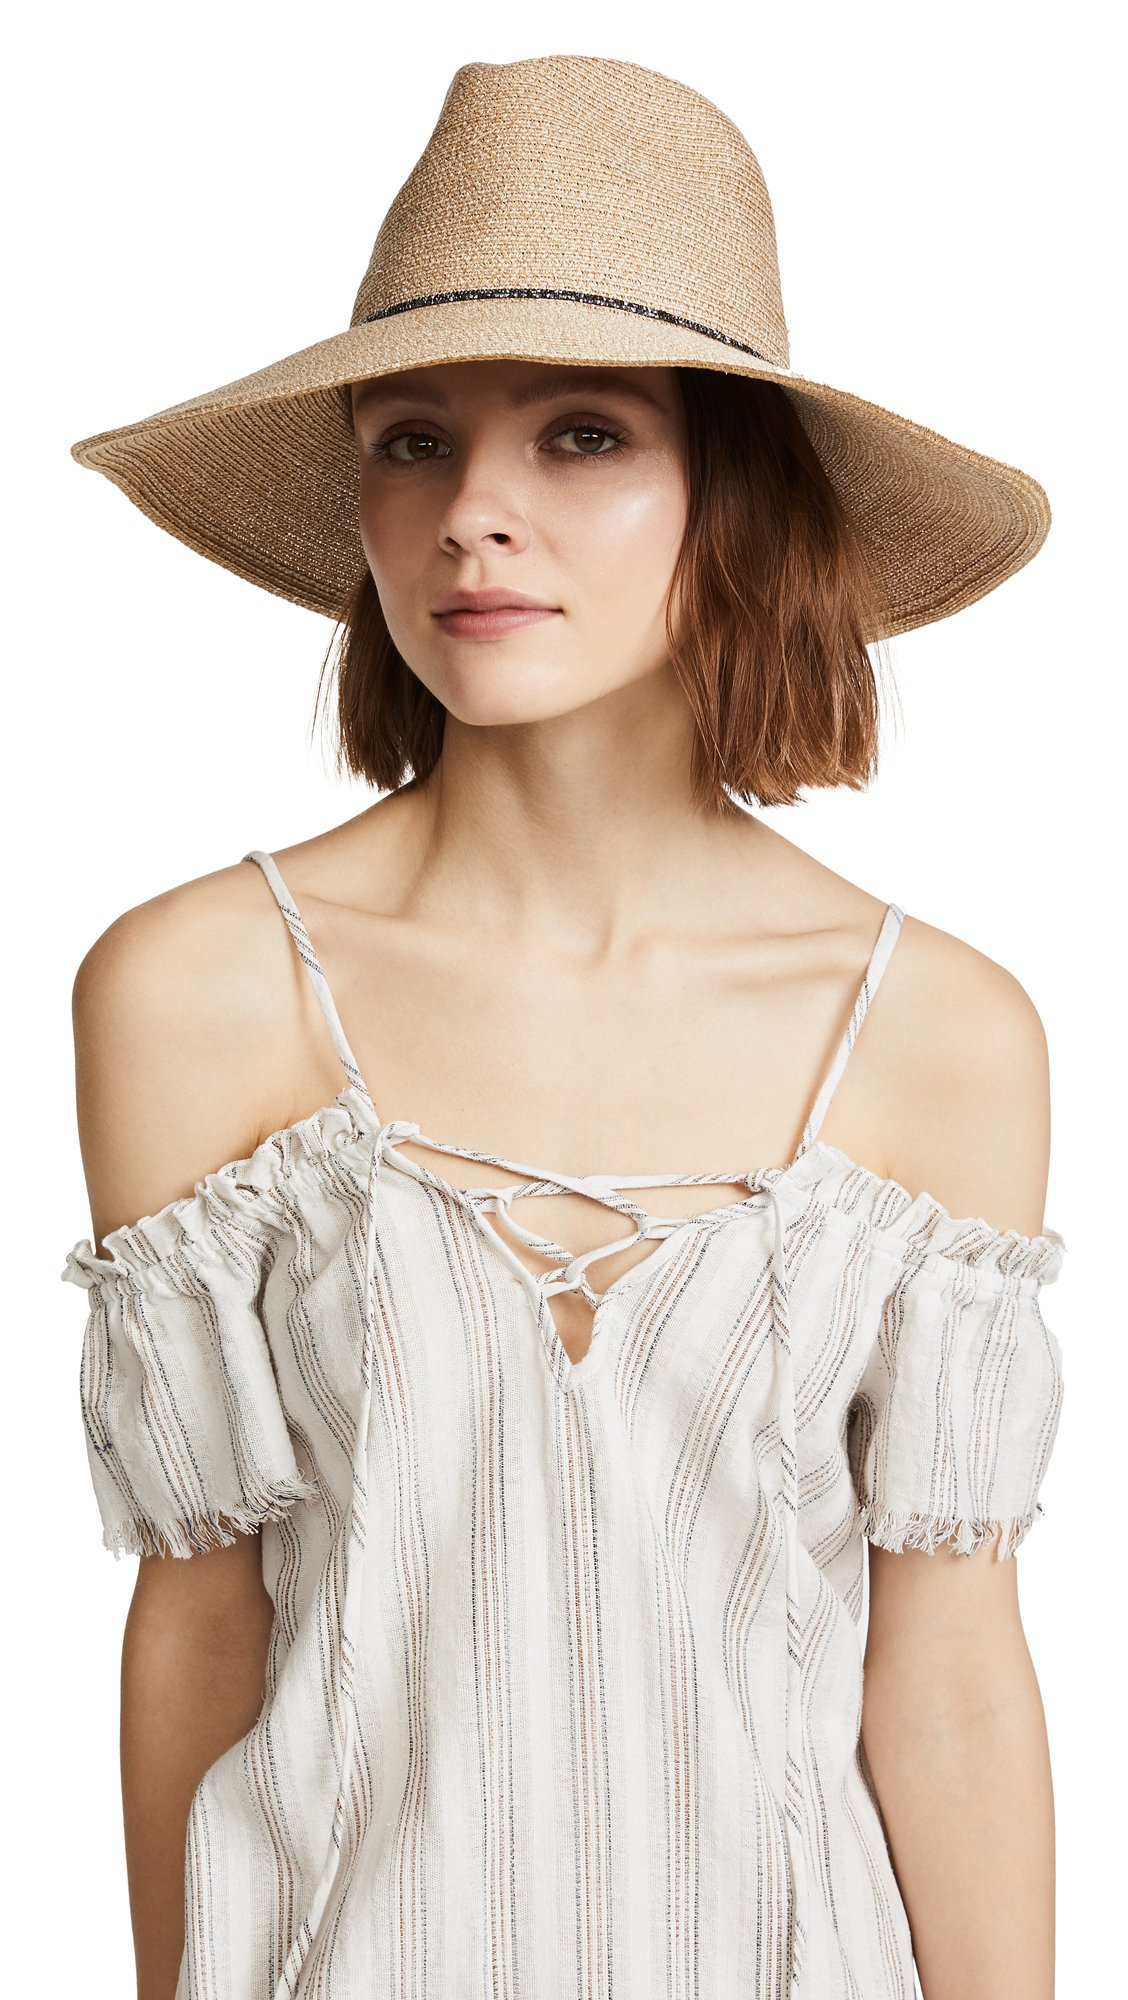 Eugenia Kim Women's Emmanuelle Beach Hat, Sand, One Size by Eugenia Kim (Image #1)